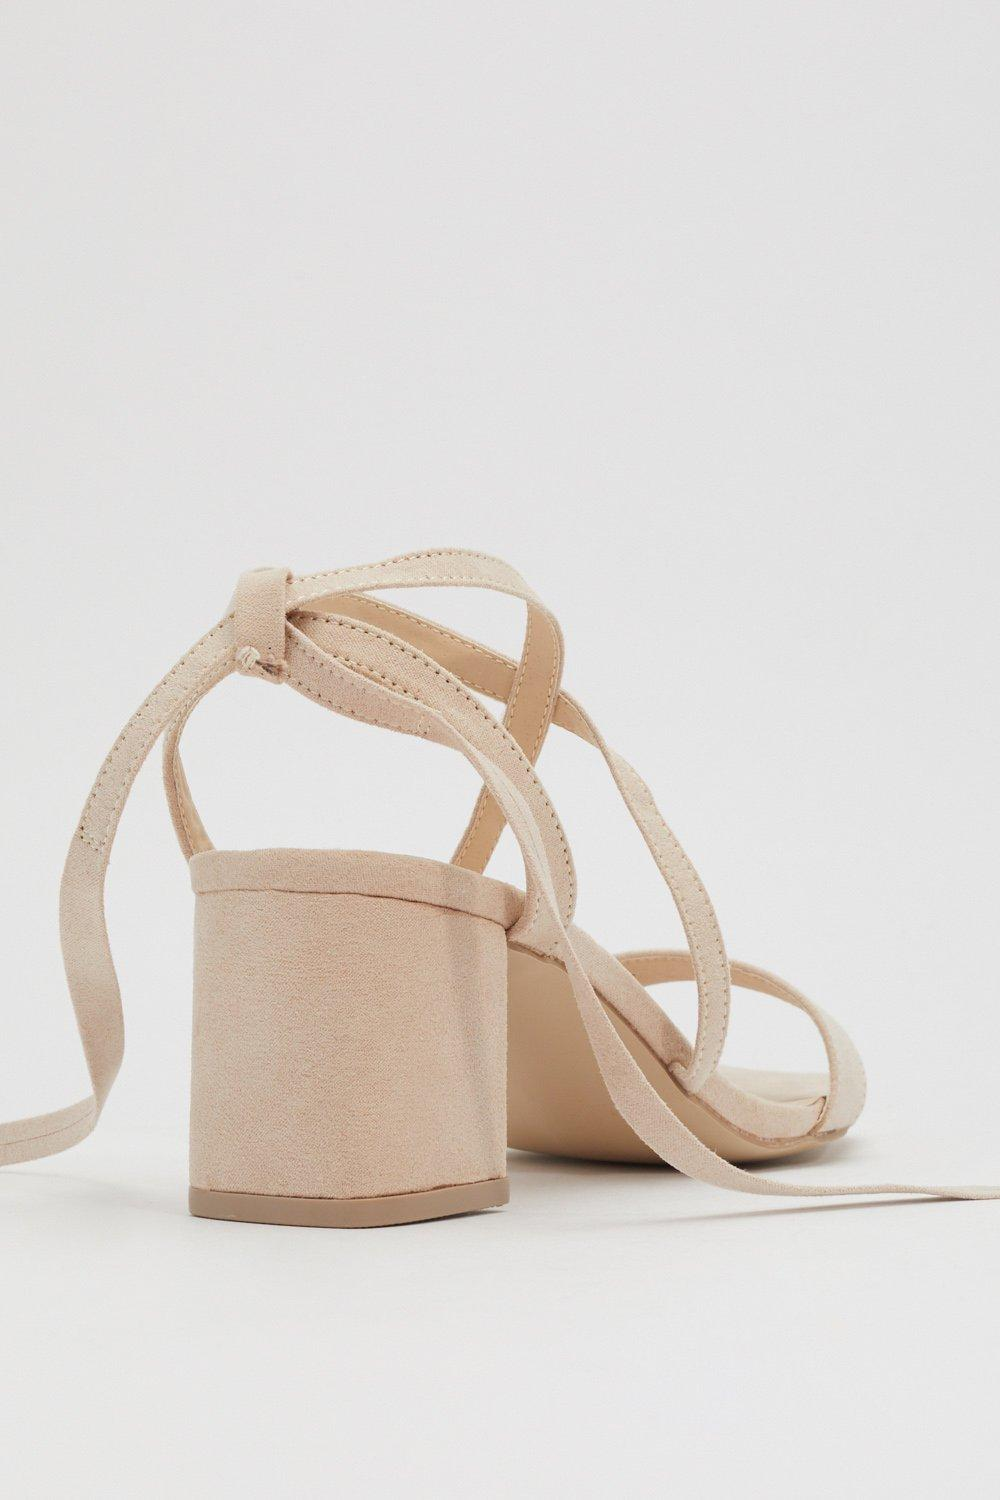 9c12d9c9a62a Womens Nude Available in High Tie Wrap and Tie Sandals. Hover to zoom